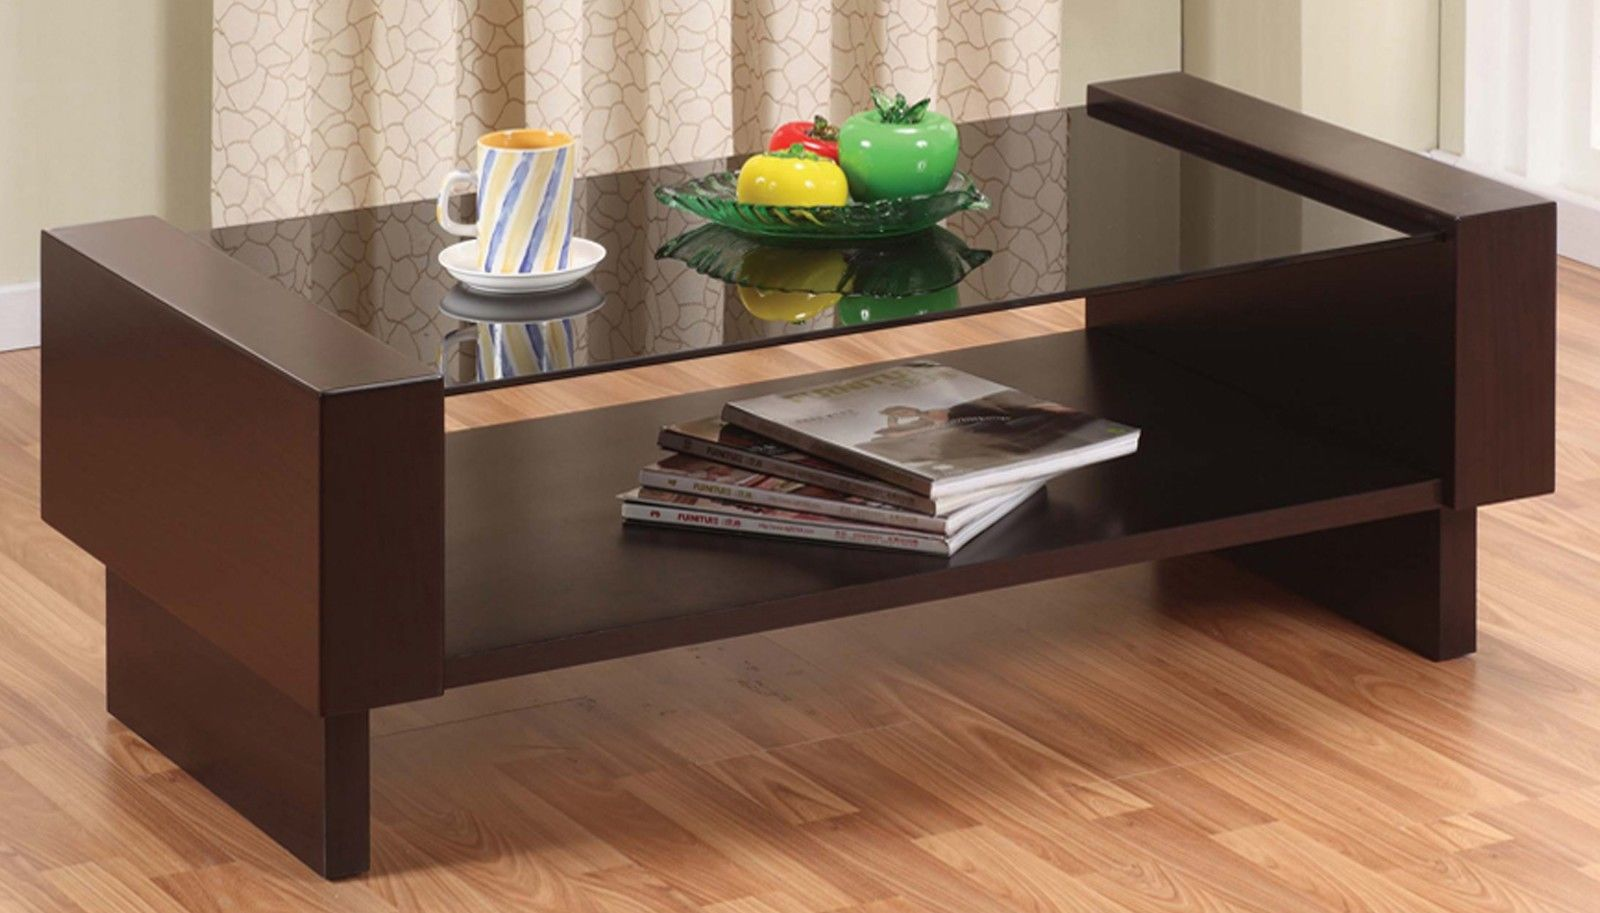 Modern Glass Top Coffee Table w/ Storage Shelf - CT8217_AR